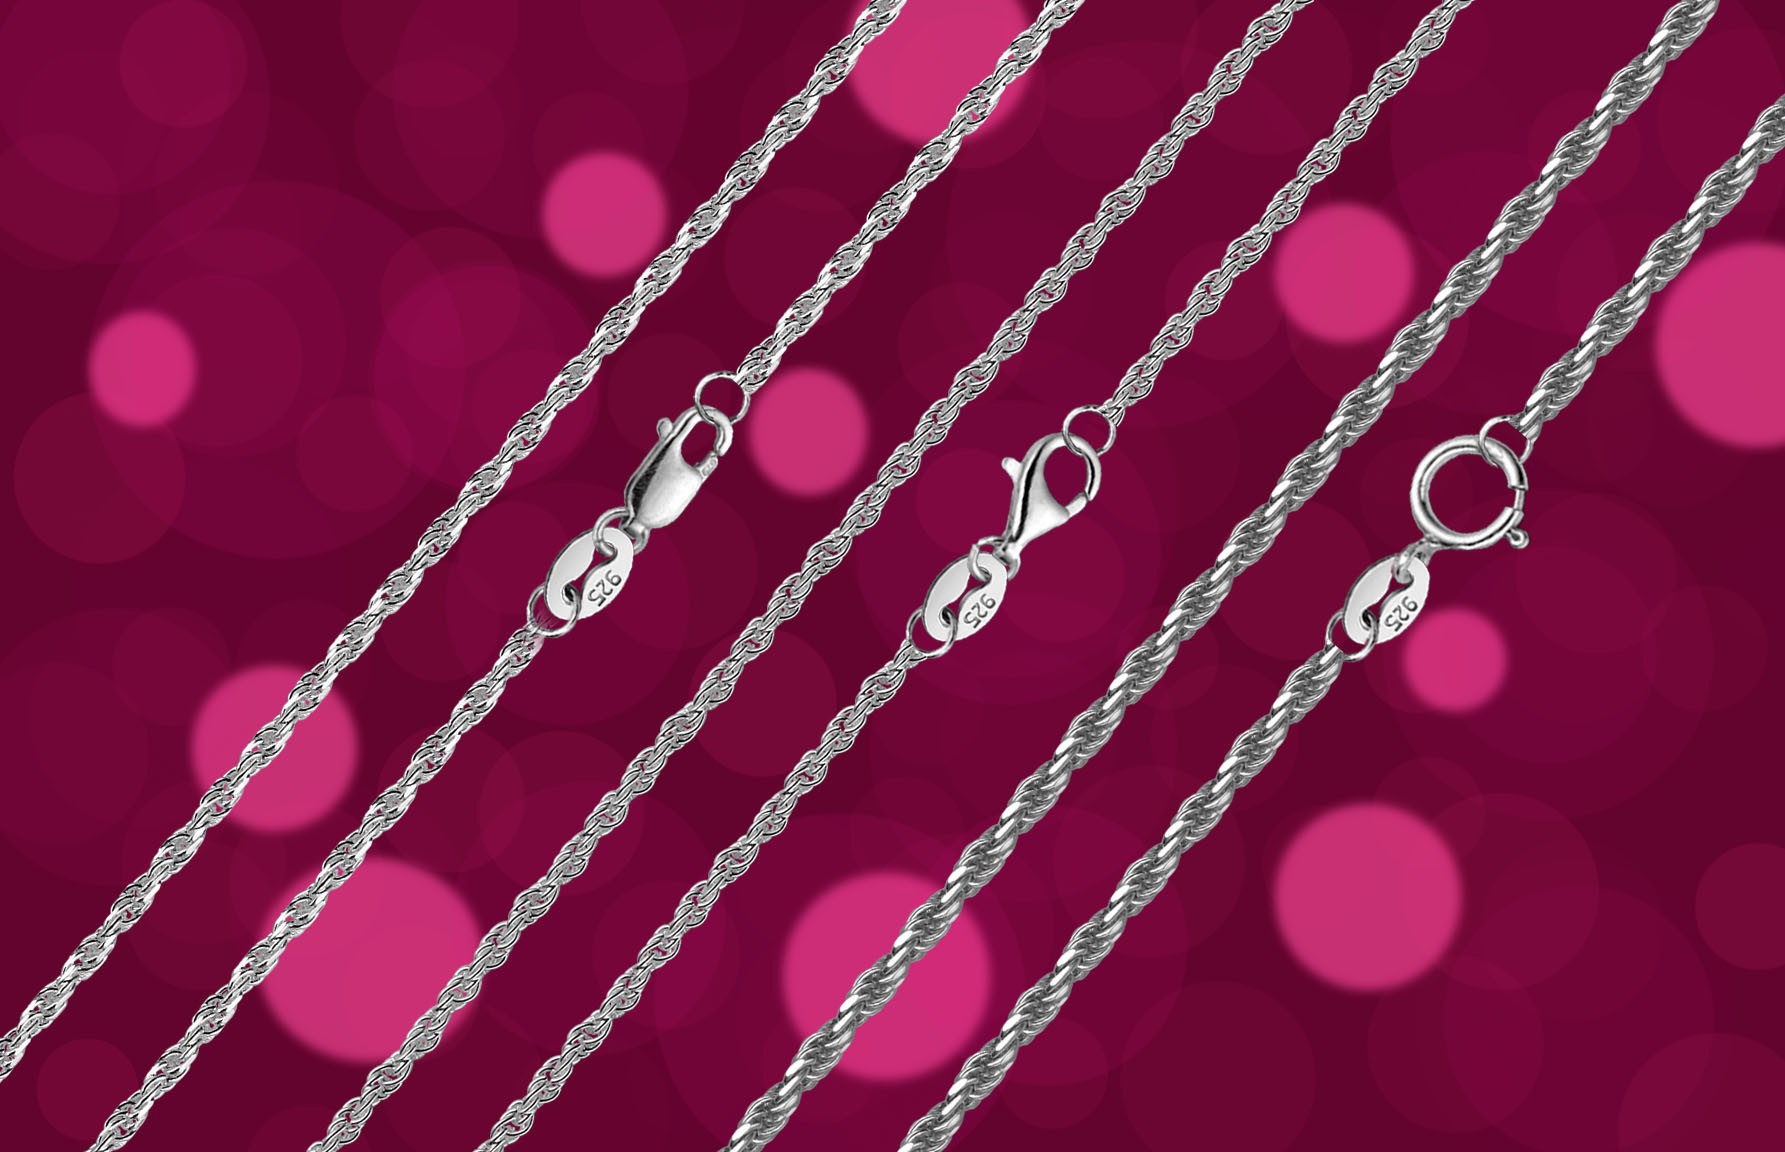 Jewellery Necklace 925 Silver Chain, Semi-Finished No Cutting Packed in Roll (B-025)